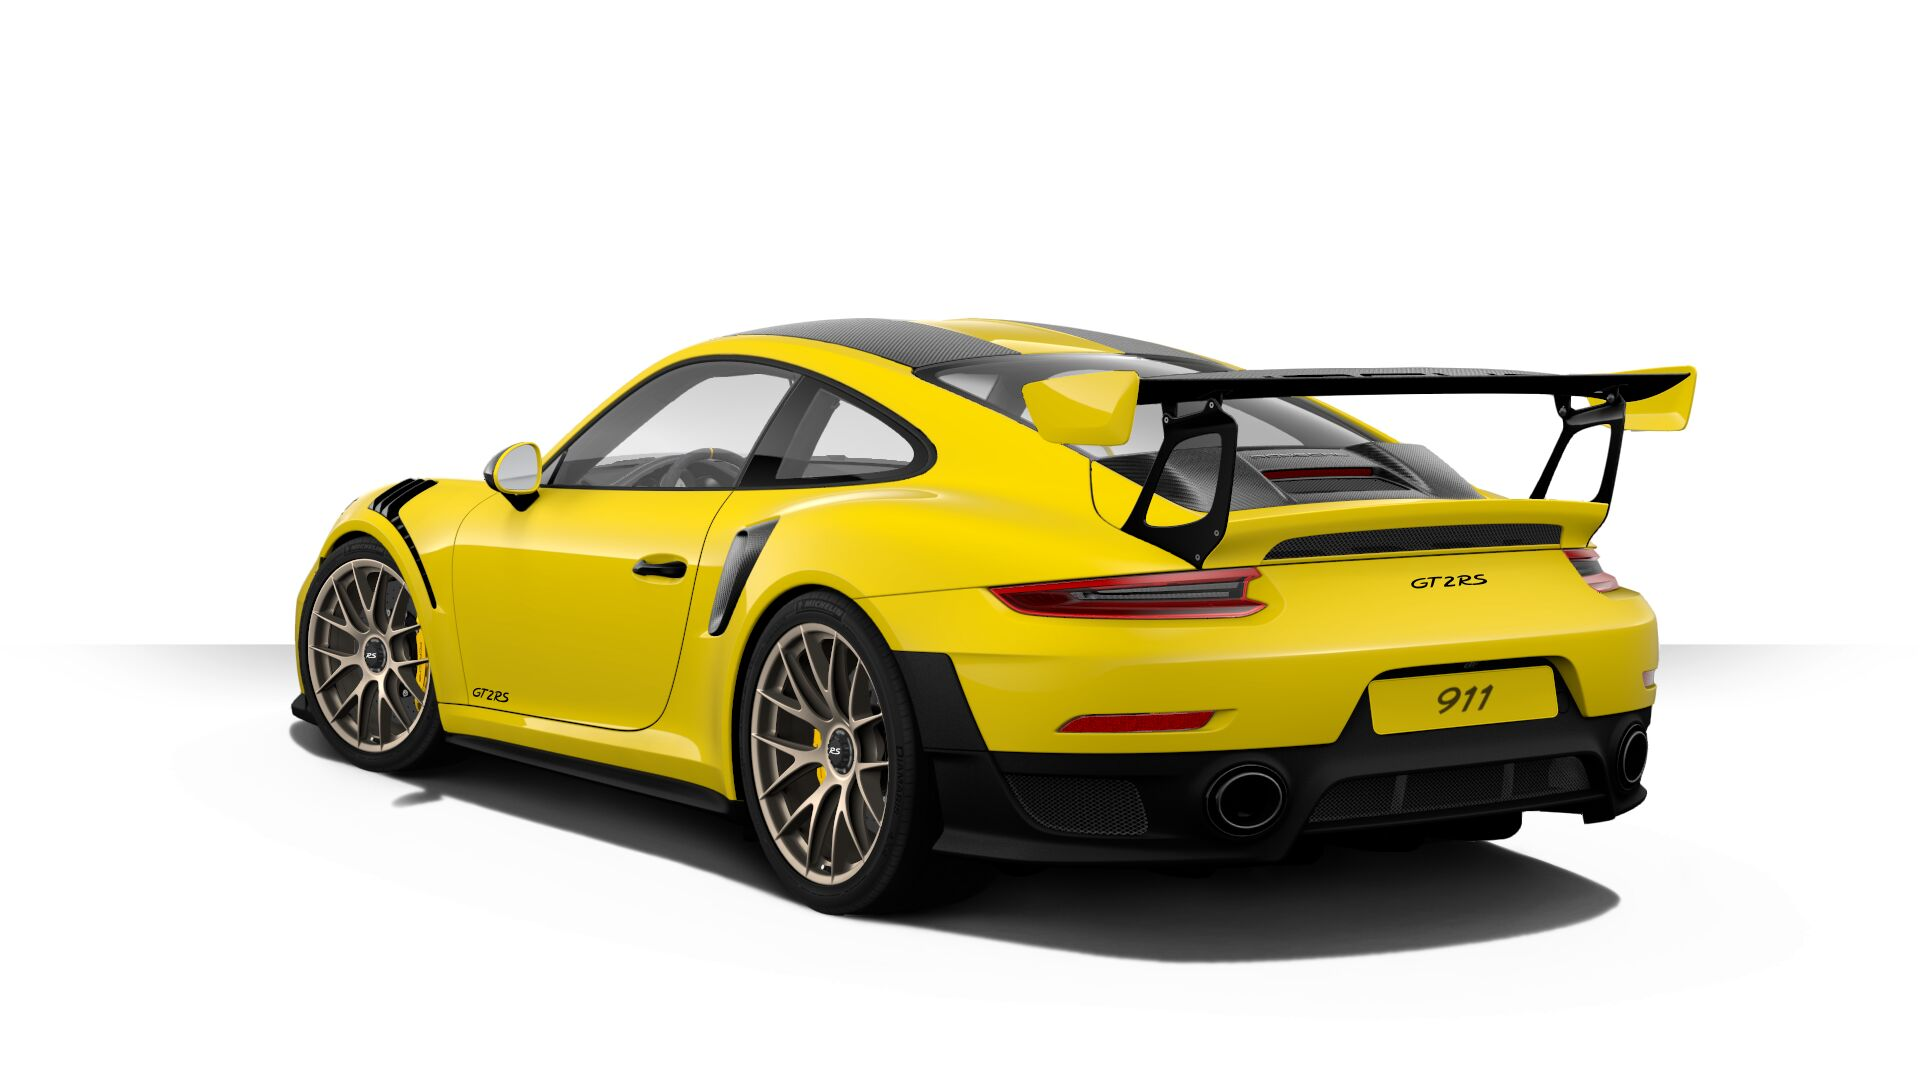 Porsche 911 GT2 RS: Lots of Power, Lots of Want